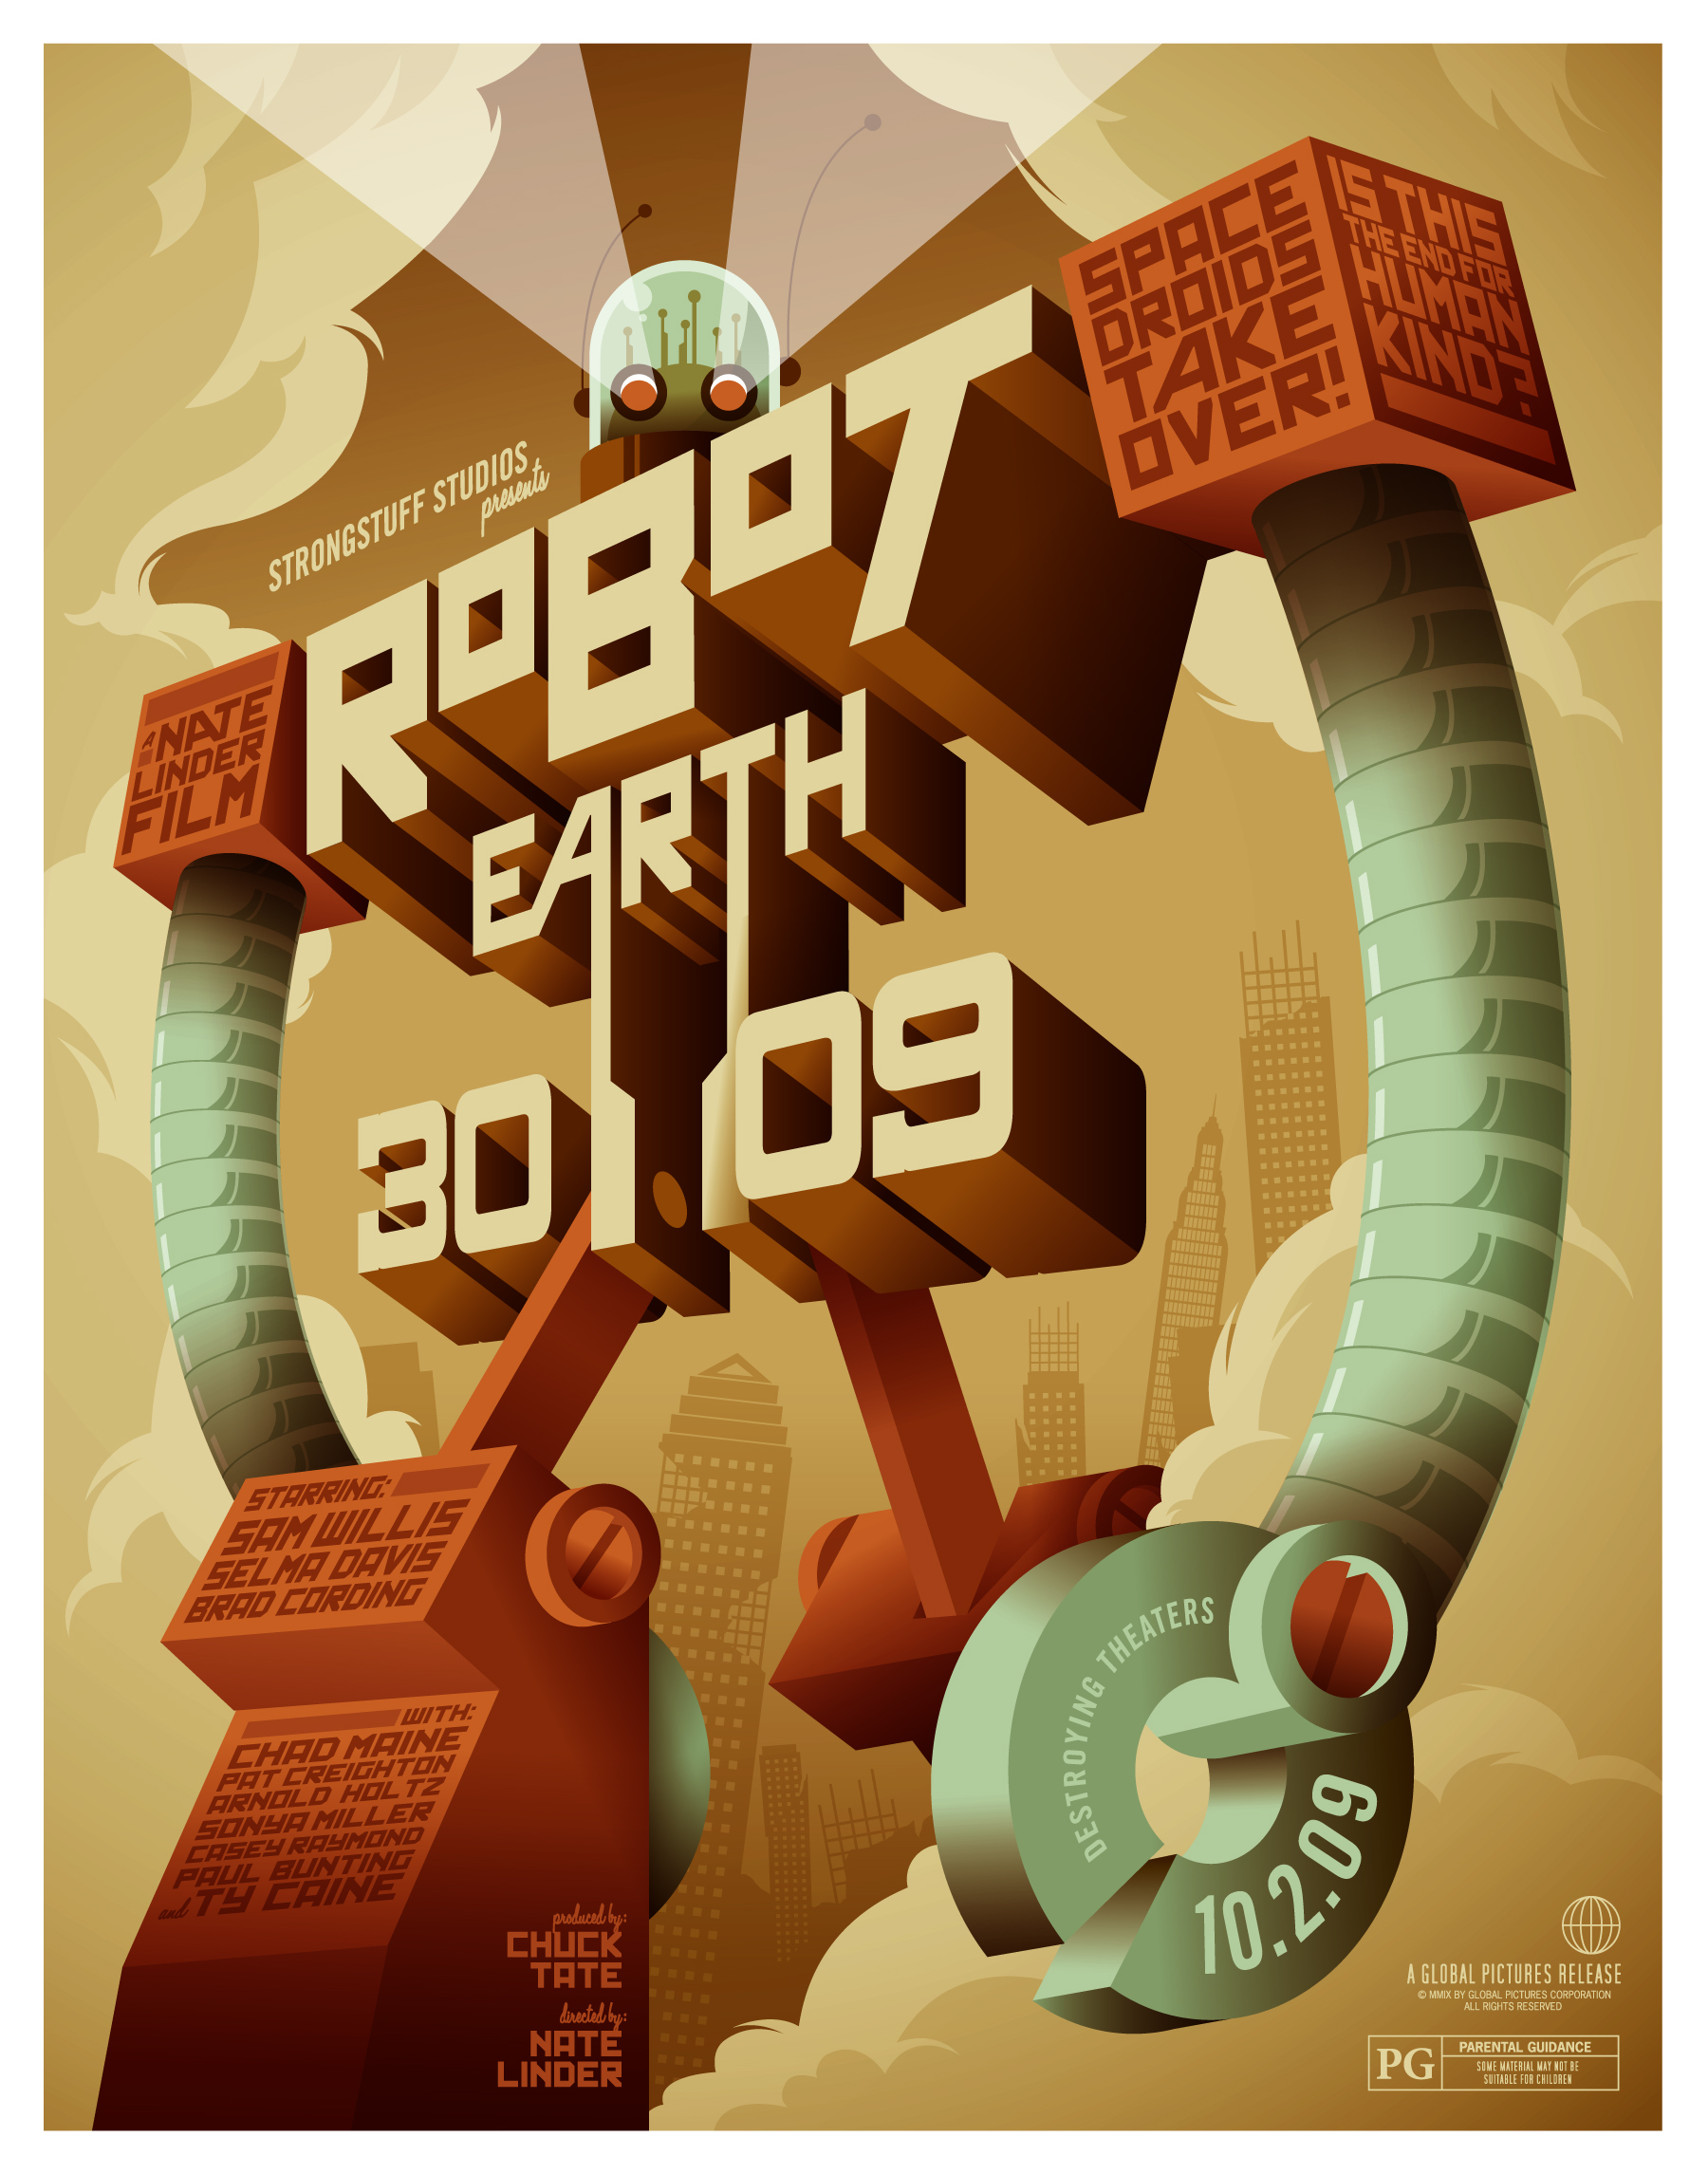 3d poster design tutorial - You Can View The Large Version Here Robot Poster Vector Illustration Tutorial